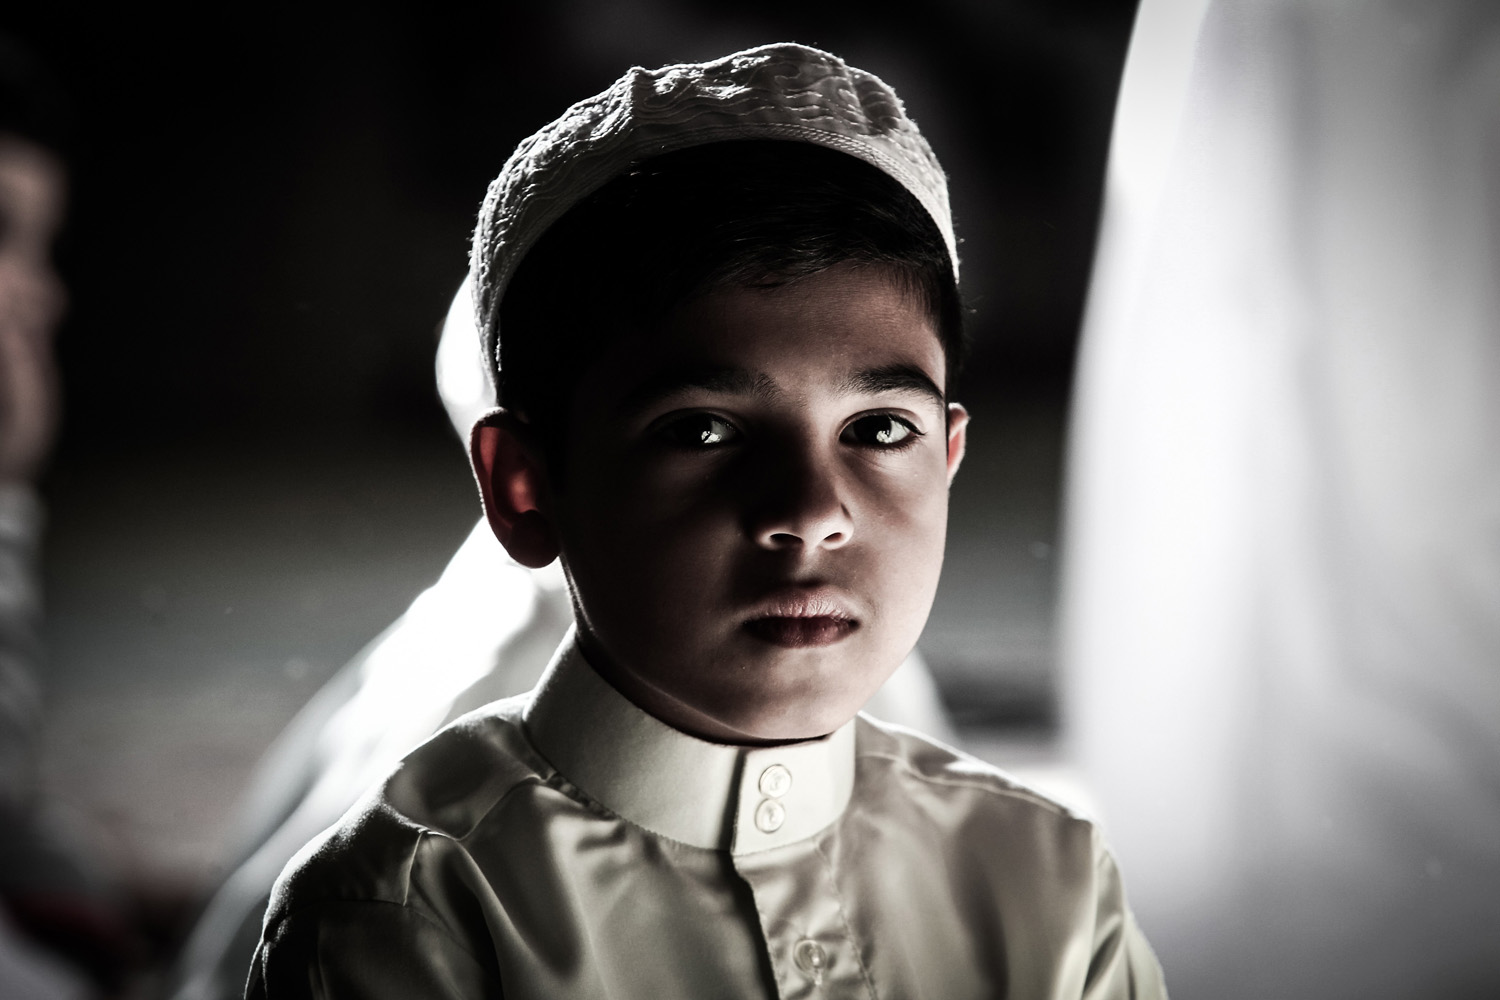 Jul. 20, 2014. A young boy In preparation for Laylat al-Qadr during the holy month of Ramadan when the Koran holy book was revealed to Prophet Mohammed by archangel Gabriel.